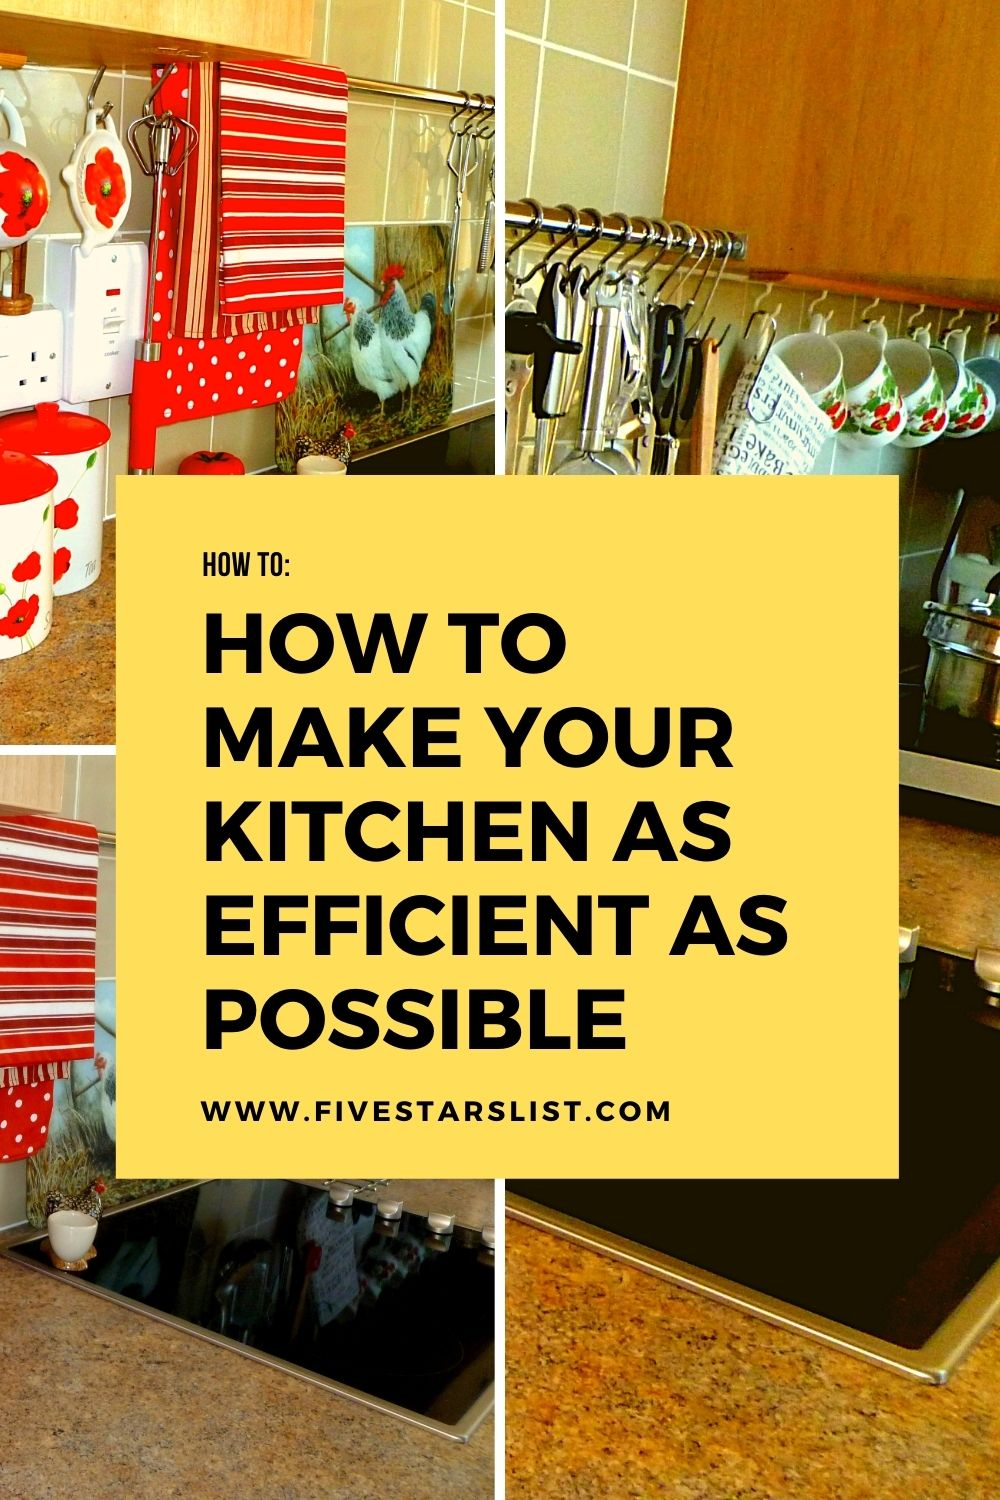 How to Make Your Kitchen as Efficient as Possible